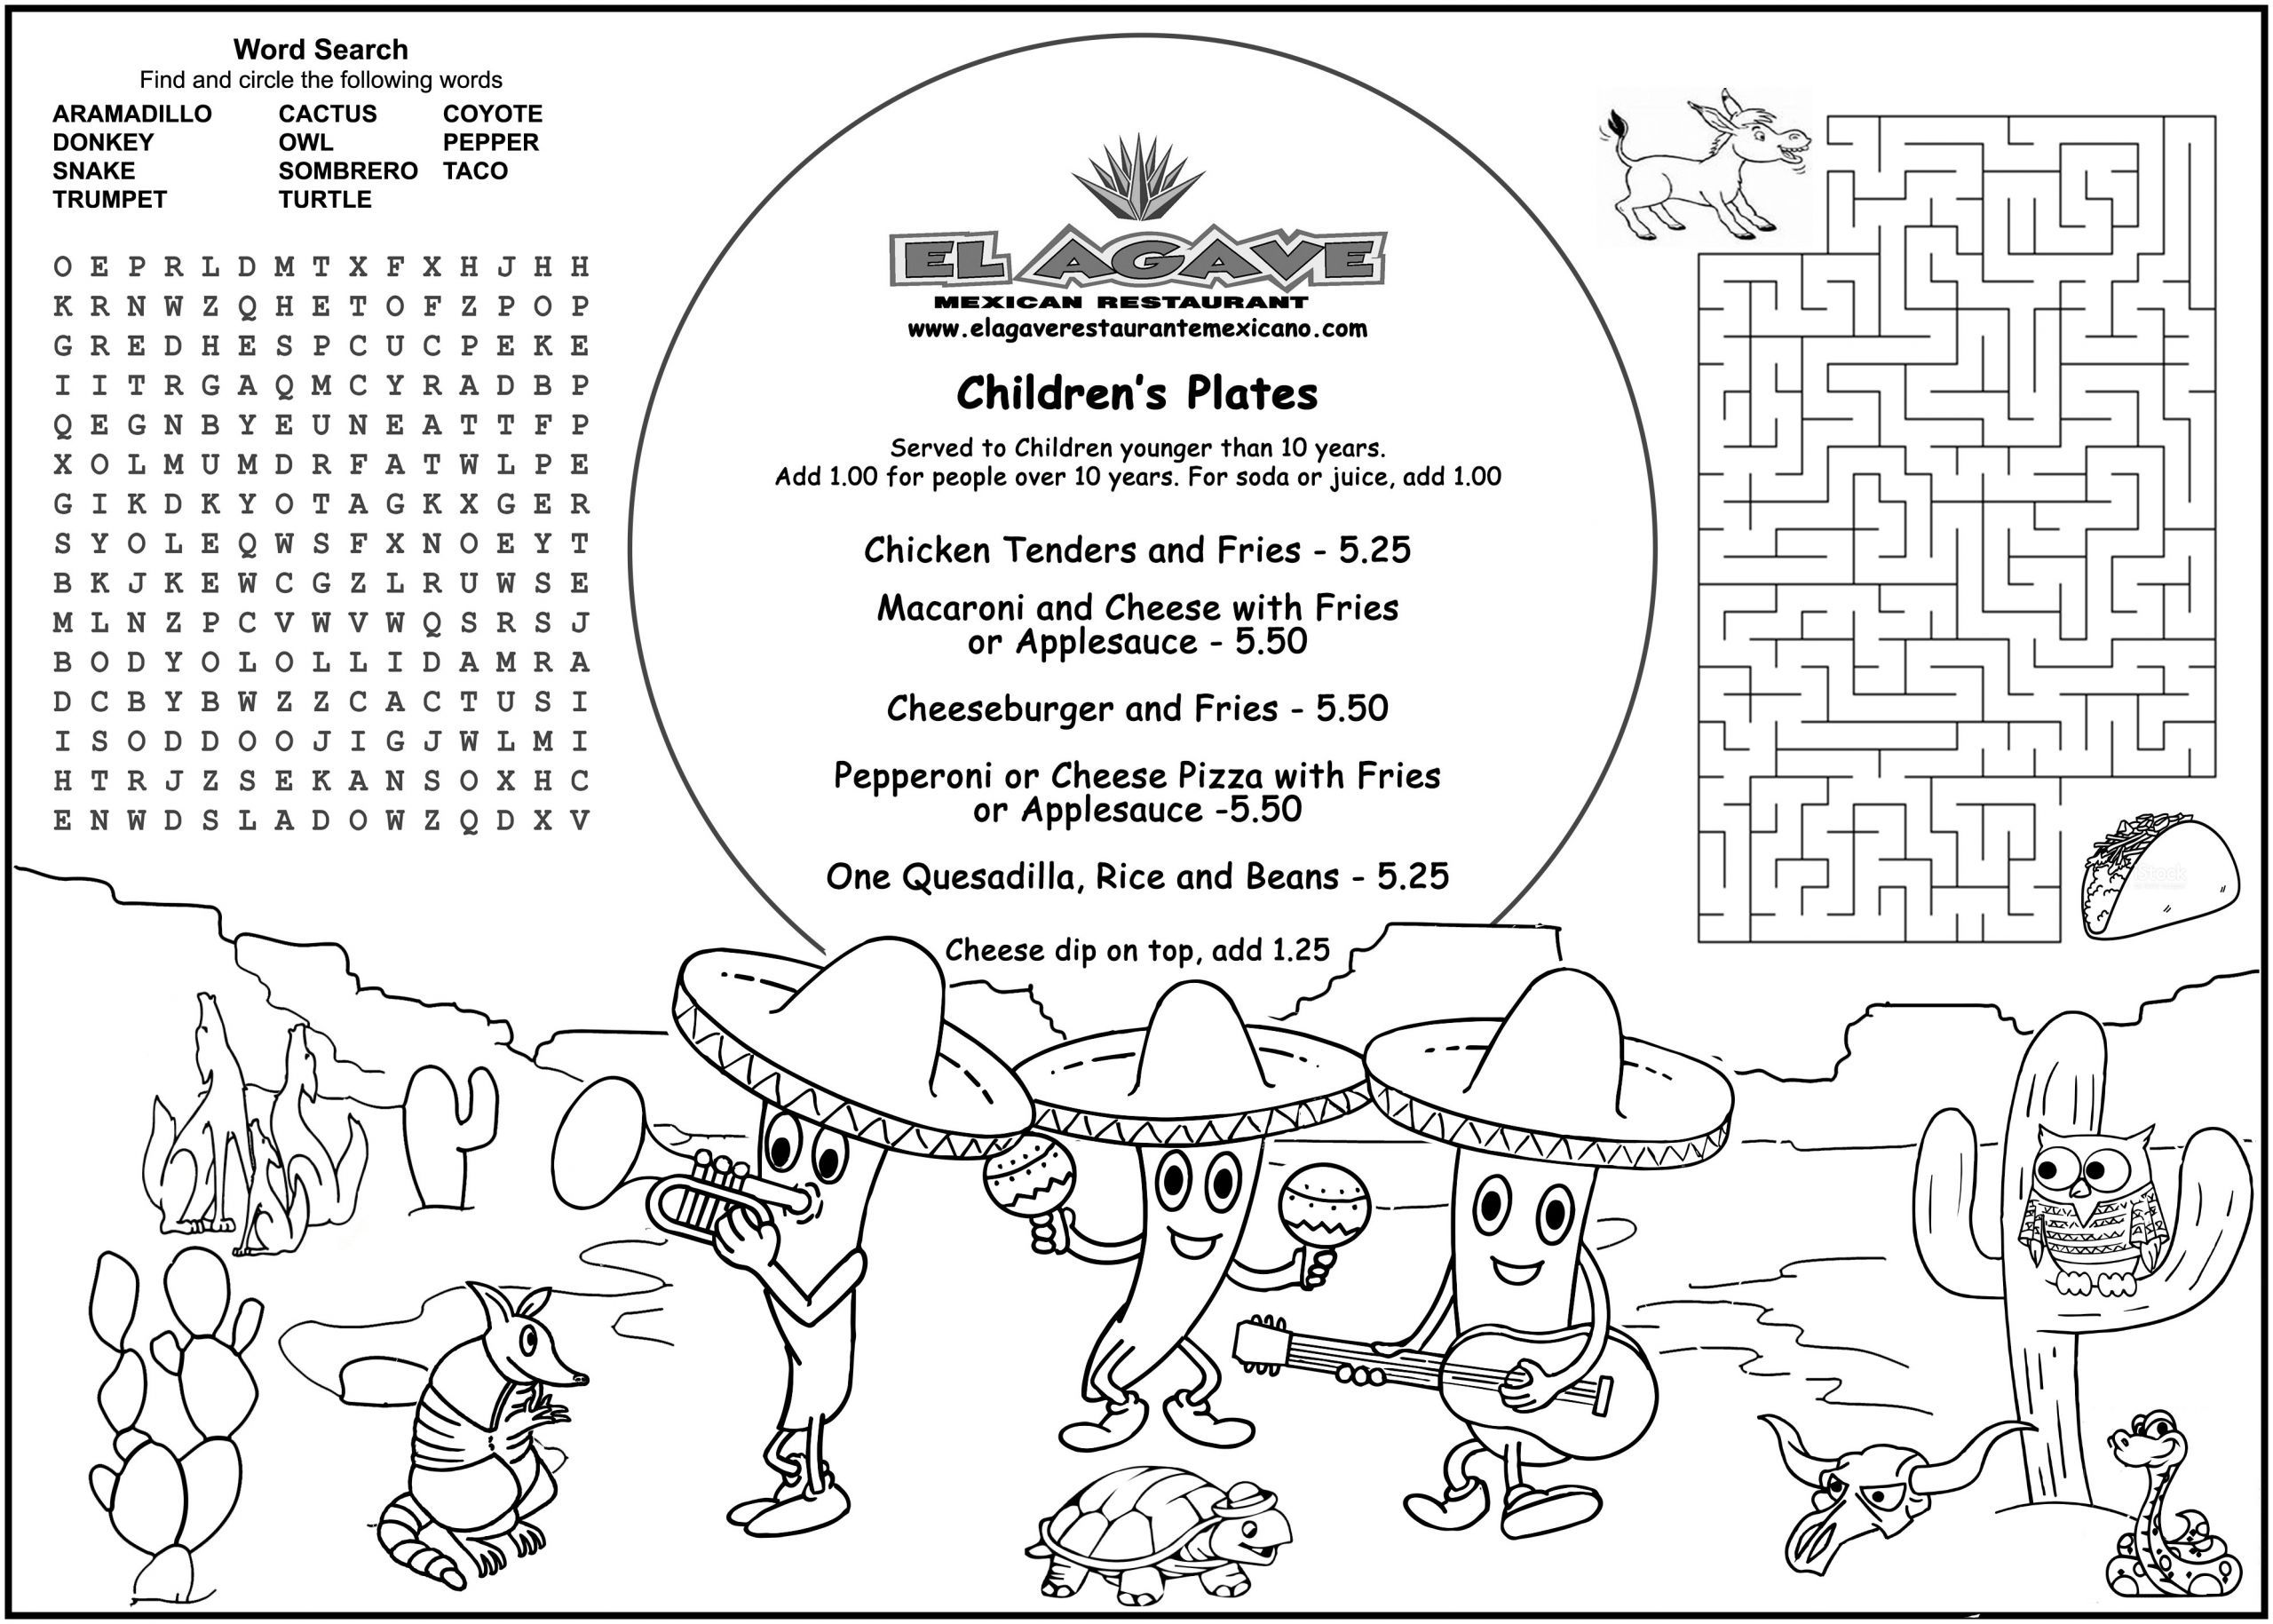 5 Ten Books Your 6 Year Old Should Read Southwest Kids Menu Placemats Colouring Activ Valentine Coloring Pages Coloring Pages For Boys Preschool Coloring Pages